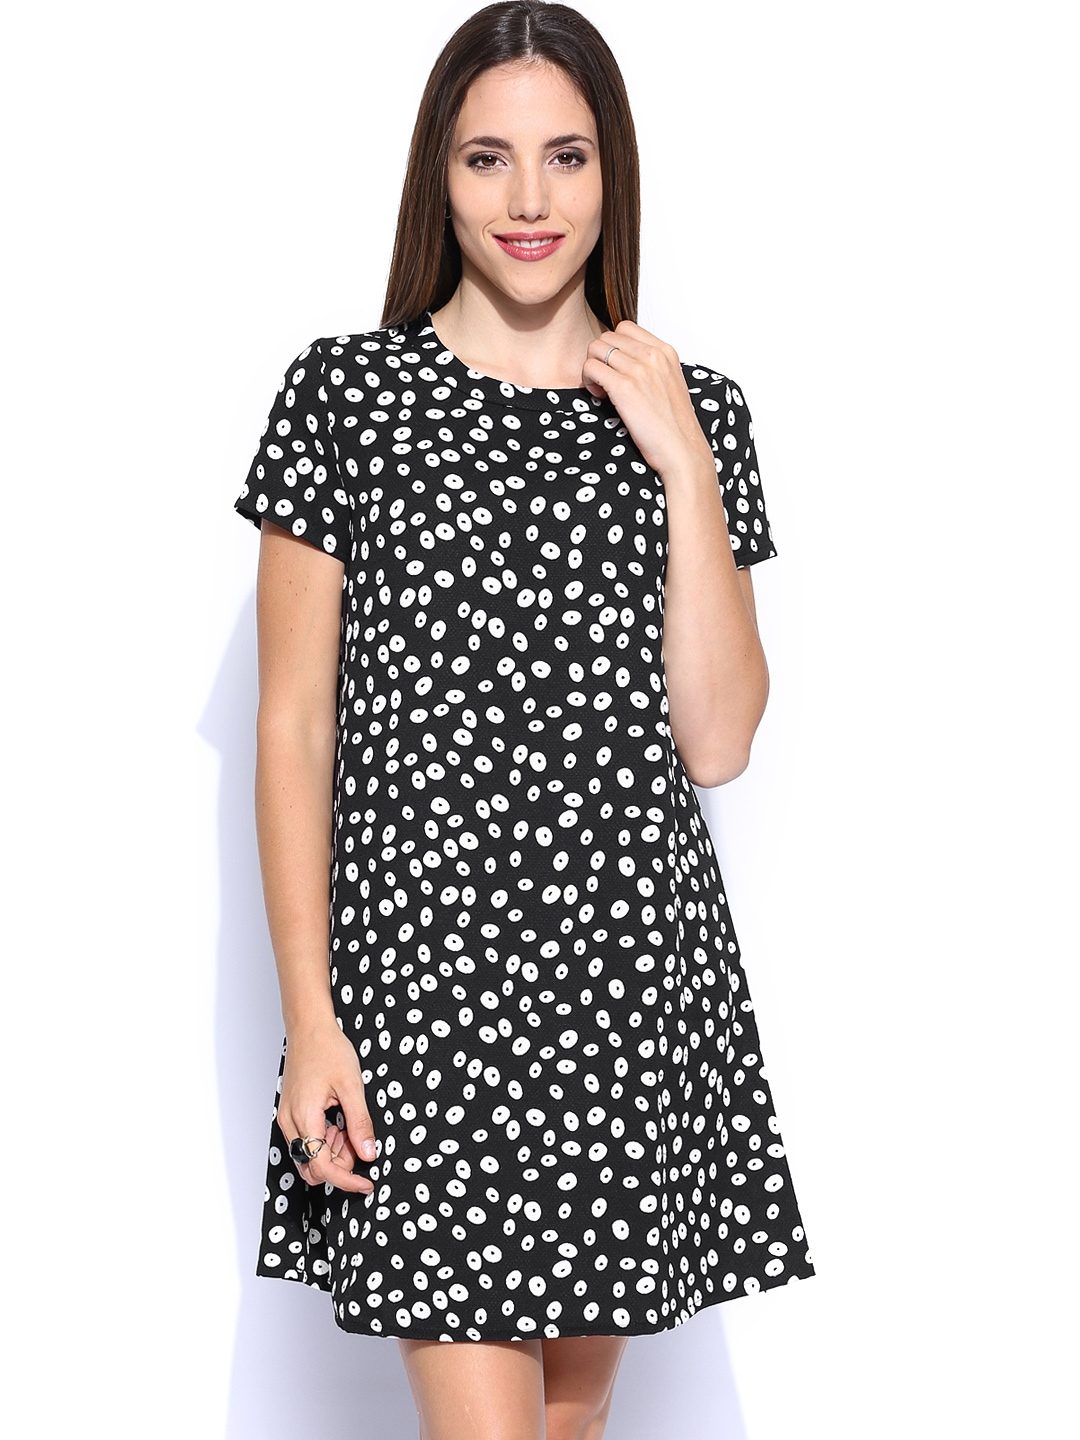 Shop discount Mango Dresses with high-quality online at Aliexpress. ALSO you will find more relatd Mango Dresses such as Women's Clothing & Accessories, Dresses, Women's Sets, Mother & Kids are waiting for your selection. Don't hesitated to make decisions for buying Mango Dresses .